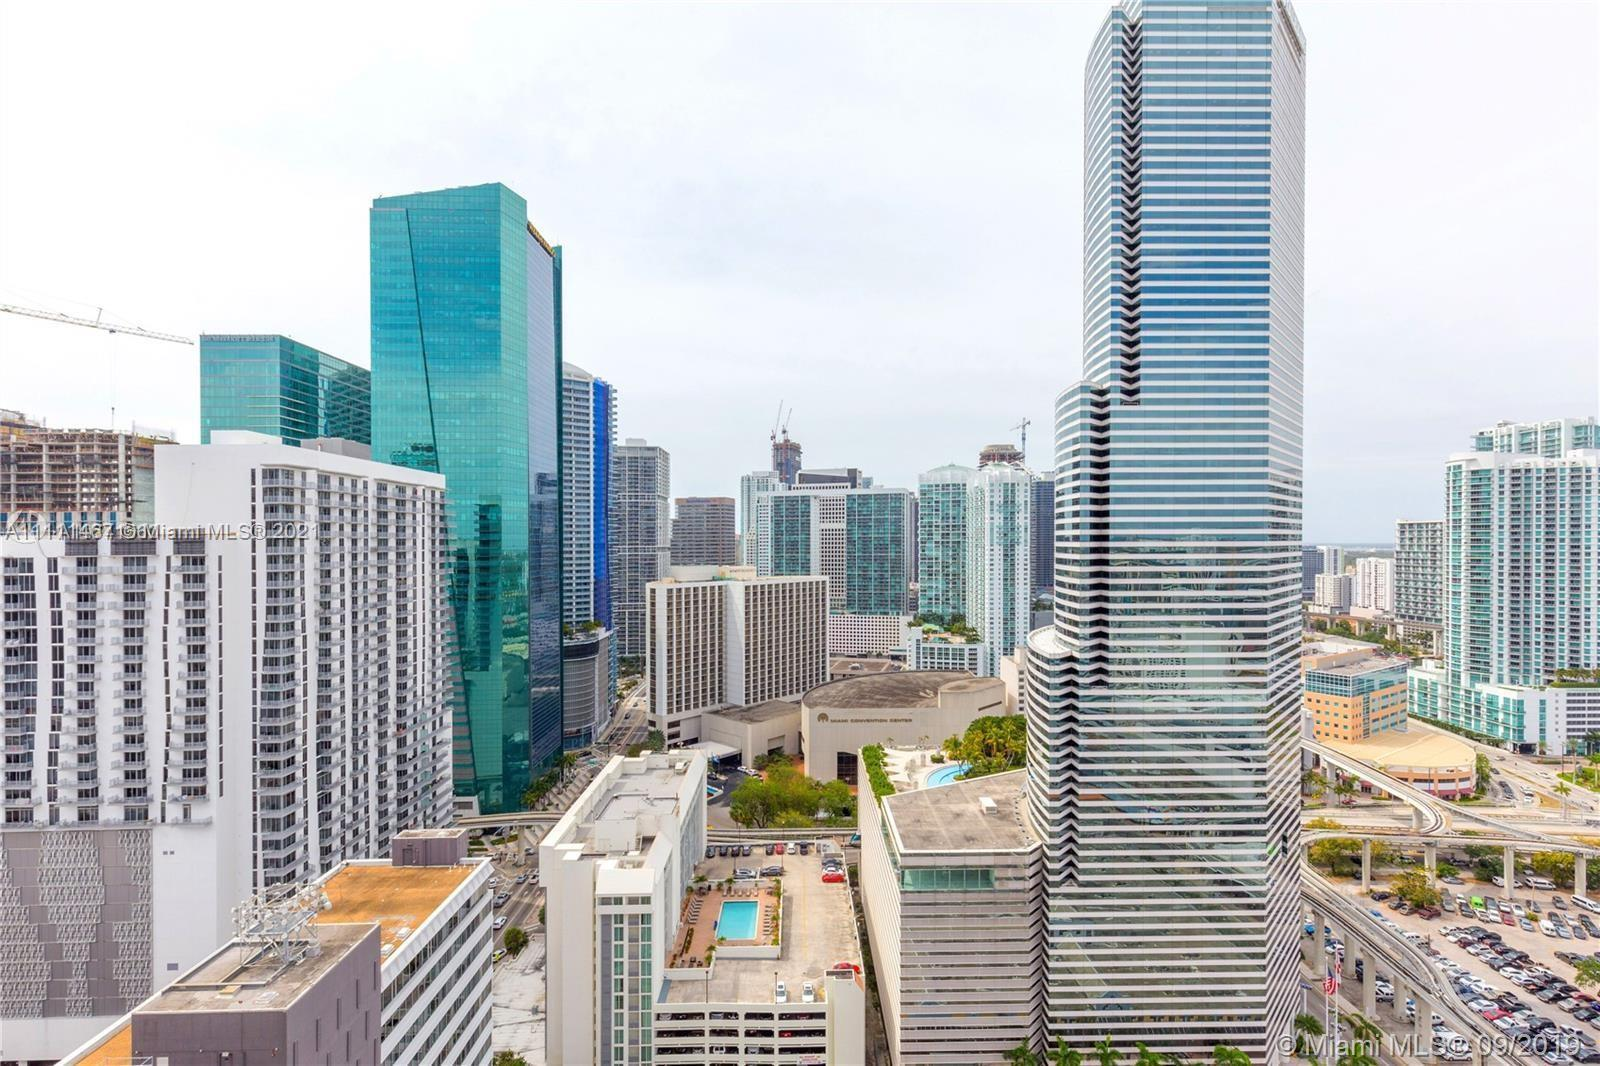 Investors Opportinuty, 2 Bedroom 2 bathrooms New Condo Apartment at Centro Downtown Miami. Walking d